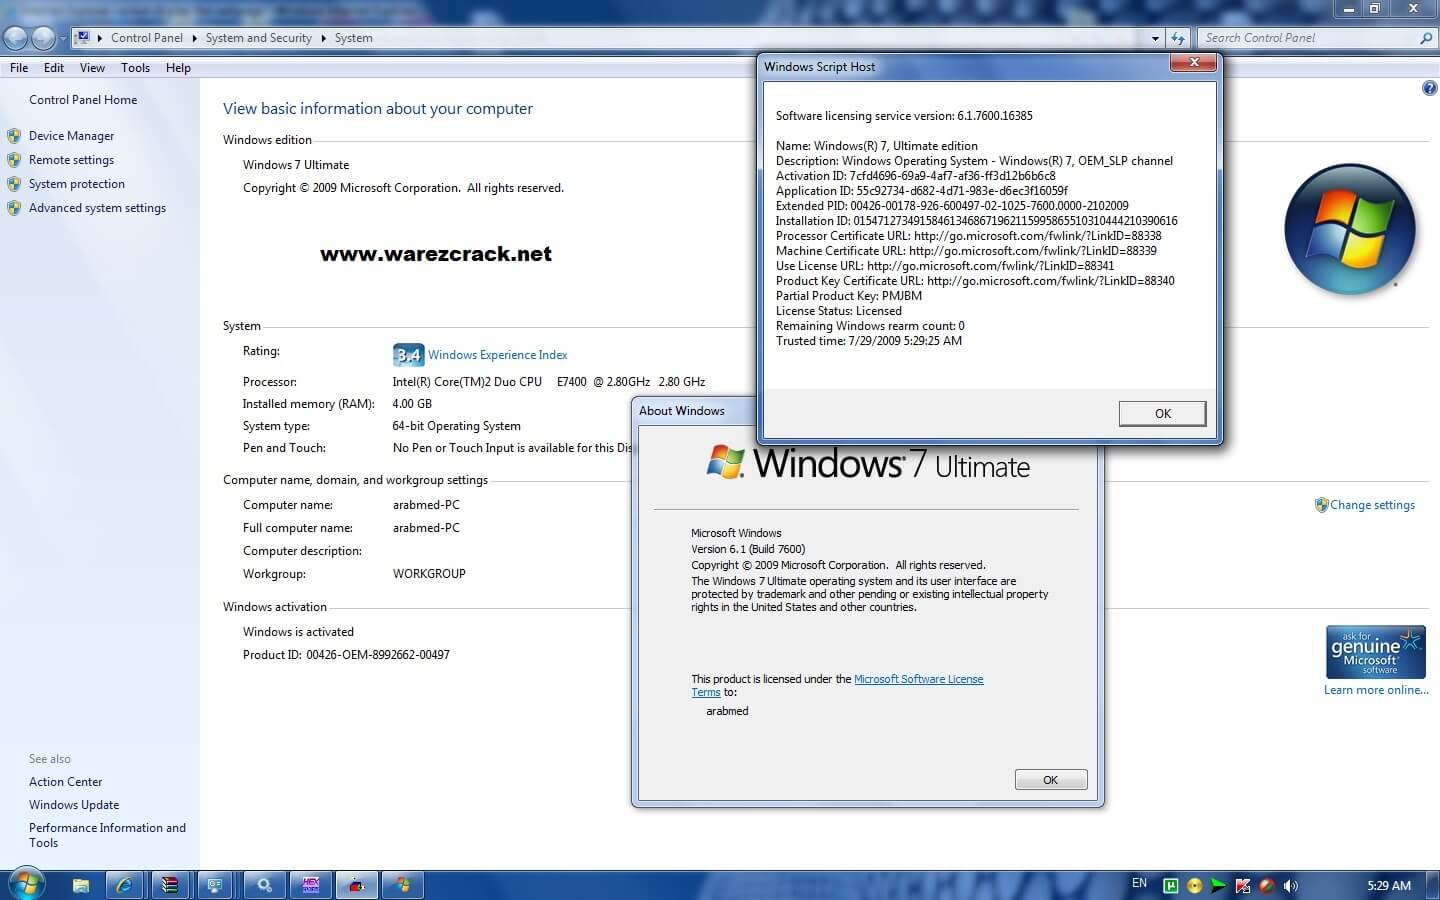 buy genuine windows 7 ultimate product key